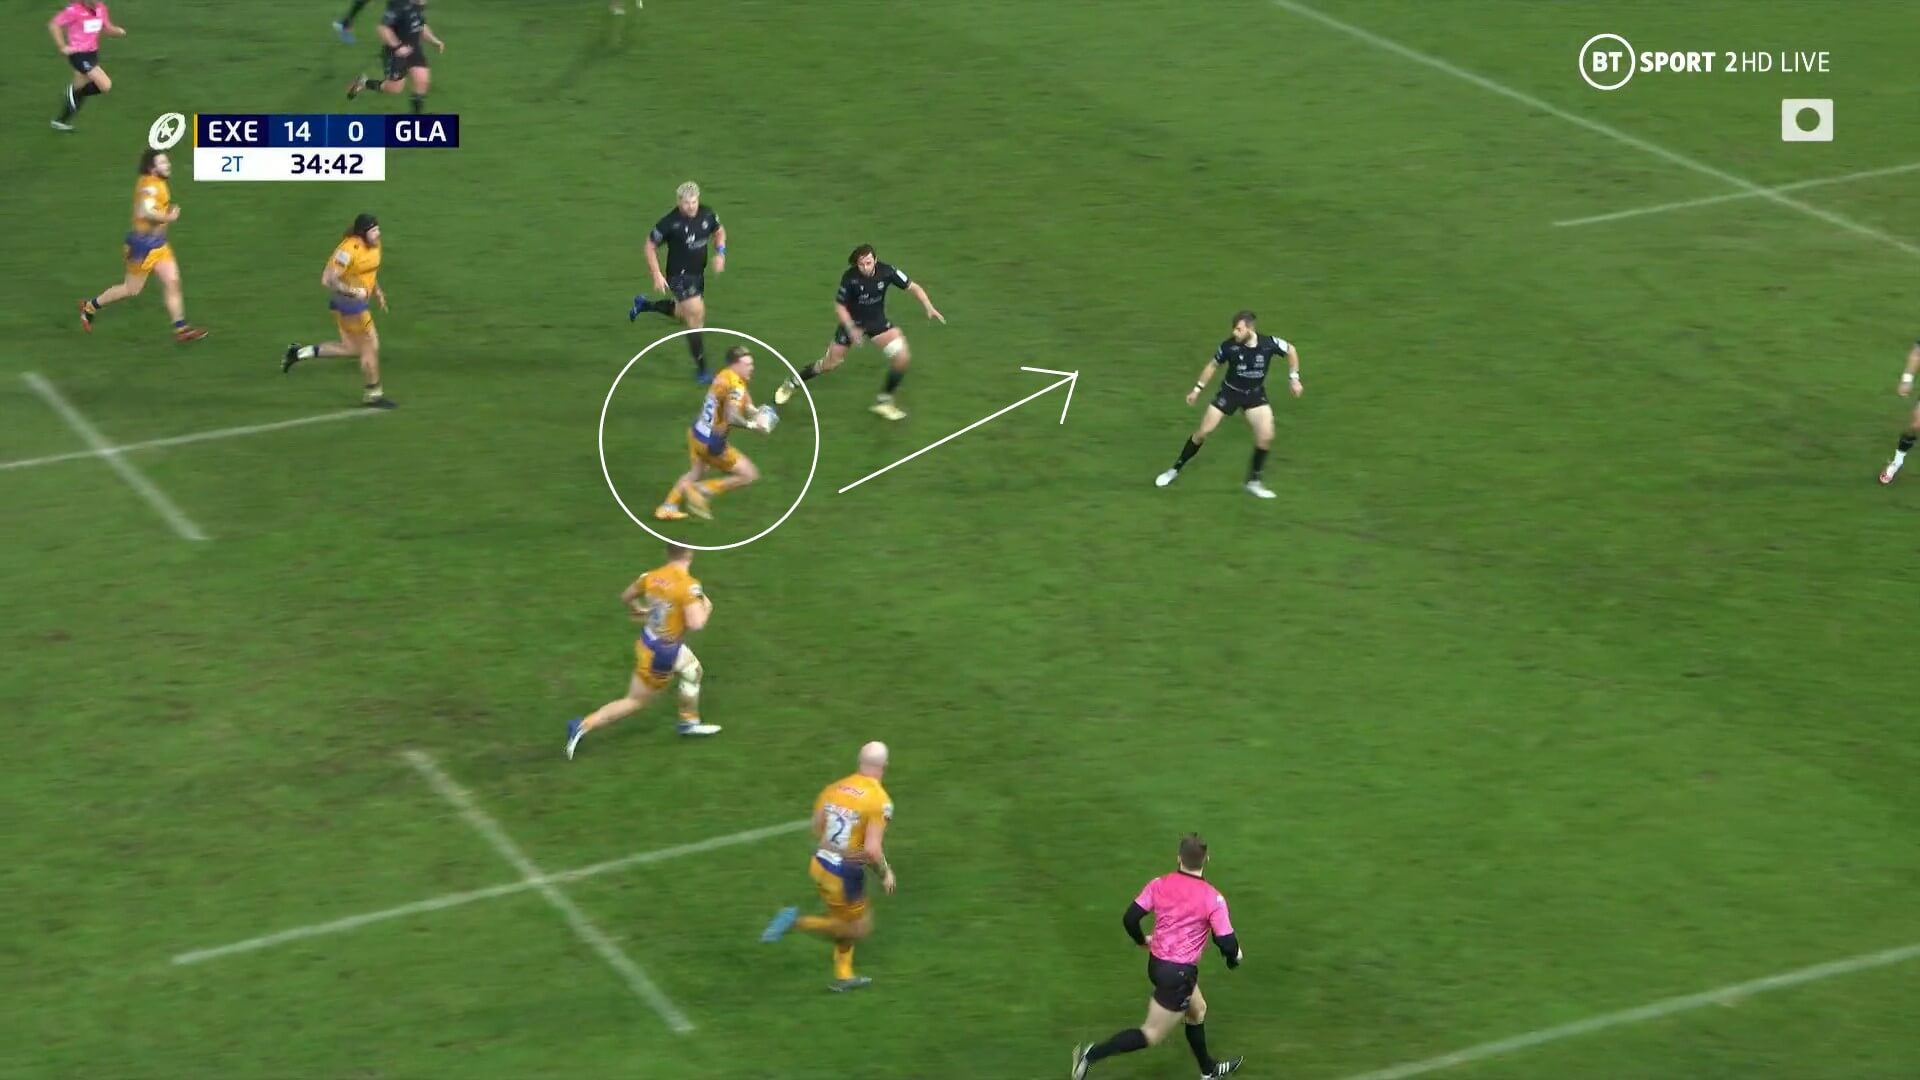 European Rugby Champions Cup 2020/2021: Exeter Chiefs v Glasgow Rangers - tactical analysis tactics